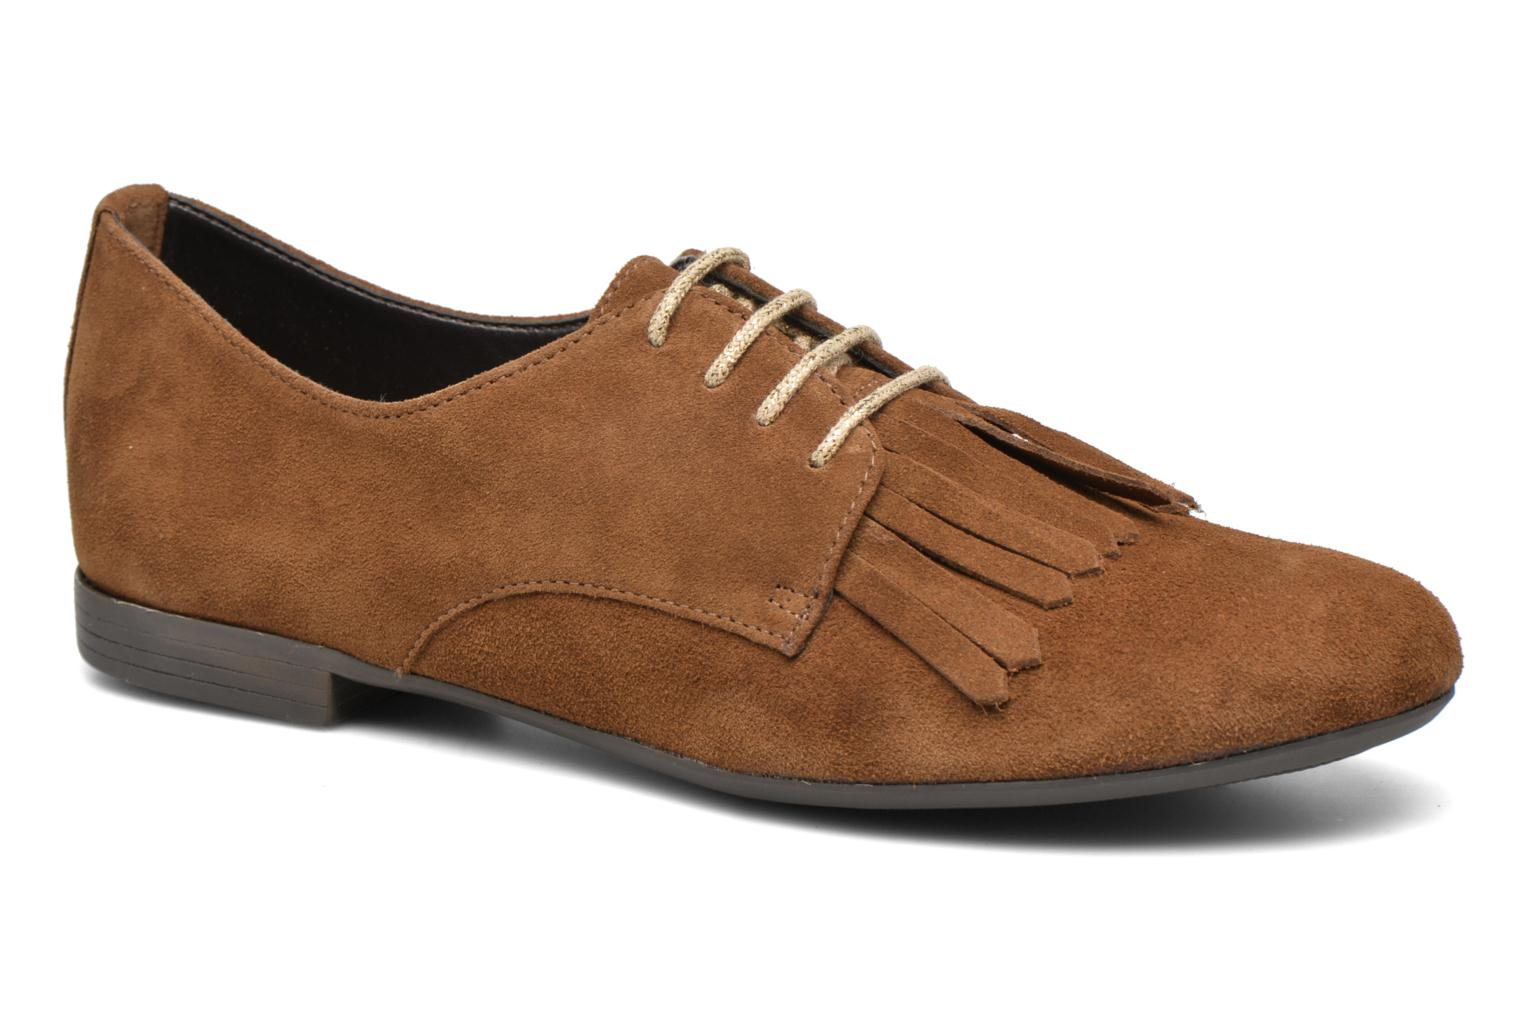 Marques Chaussure femme André femme Cheyenne Camel